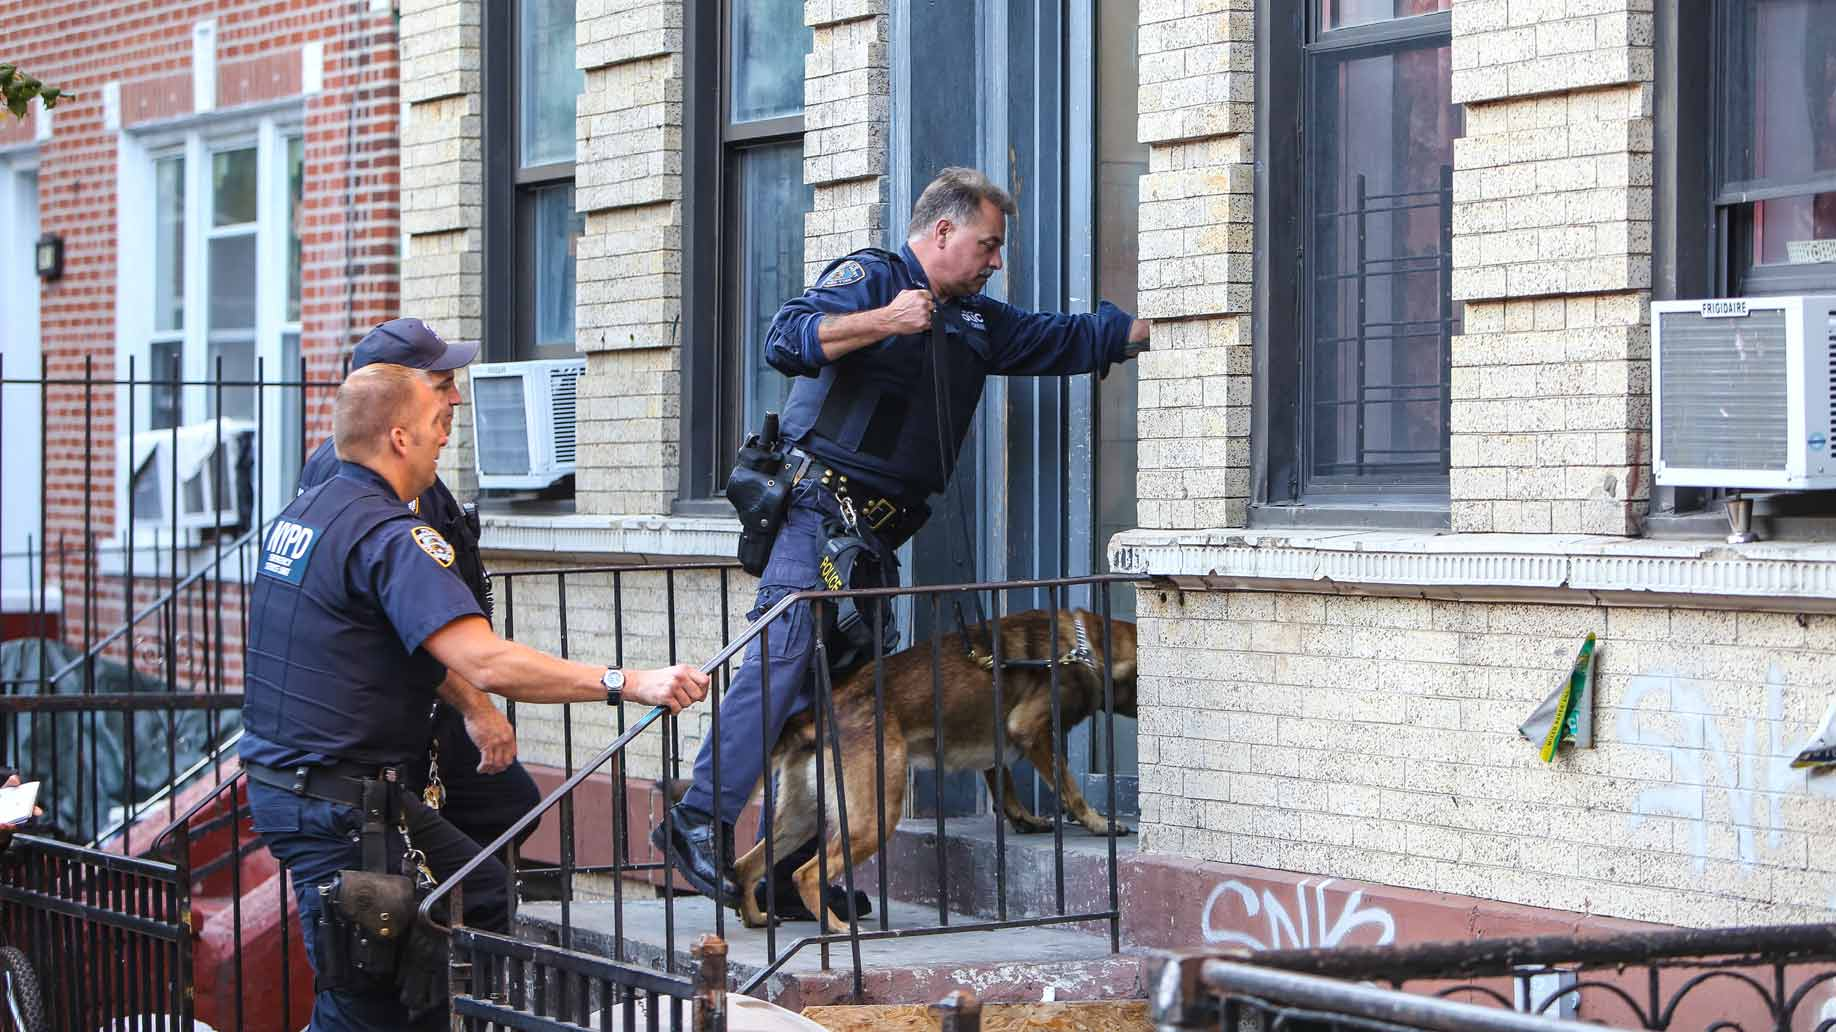 police enterin a house to search, photo by a katz